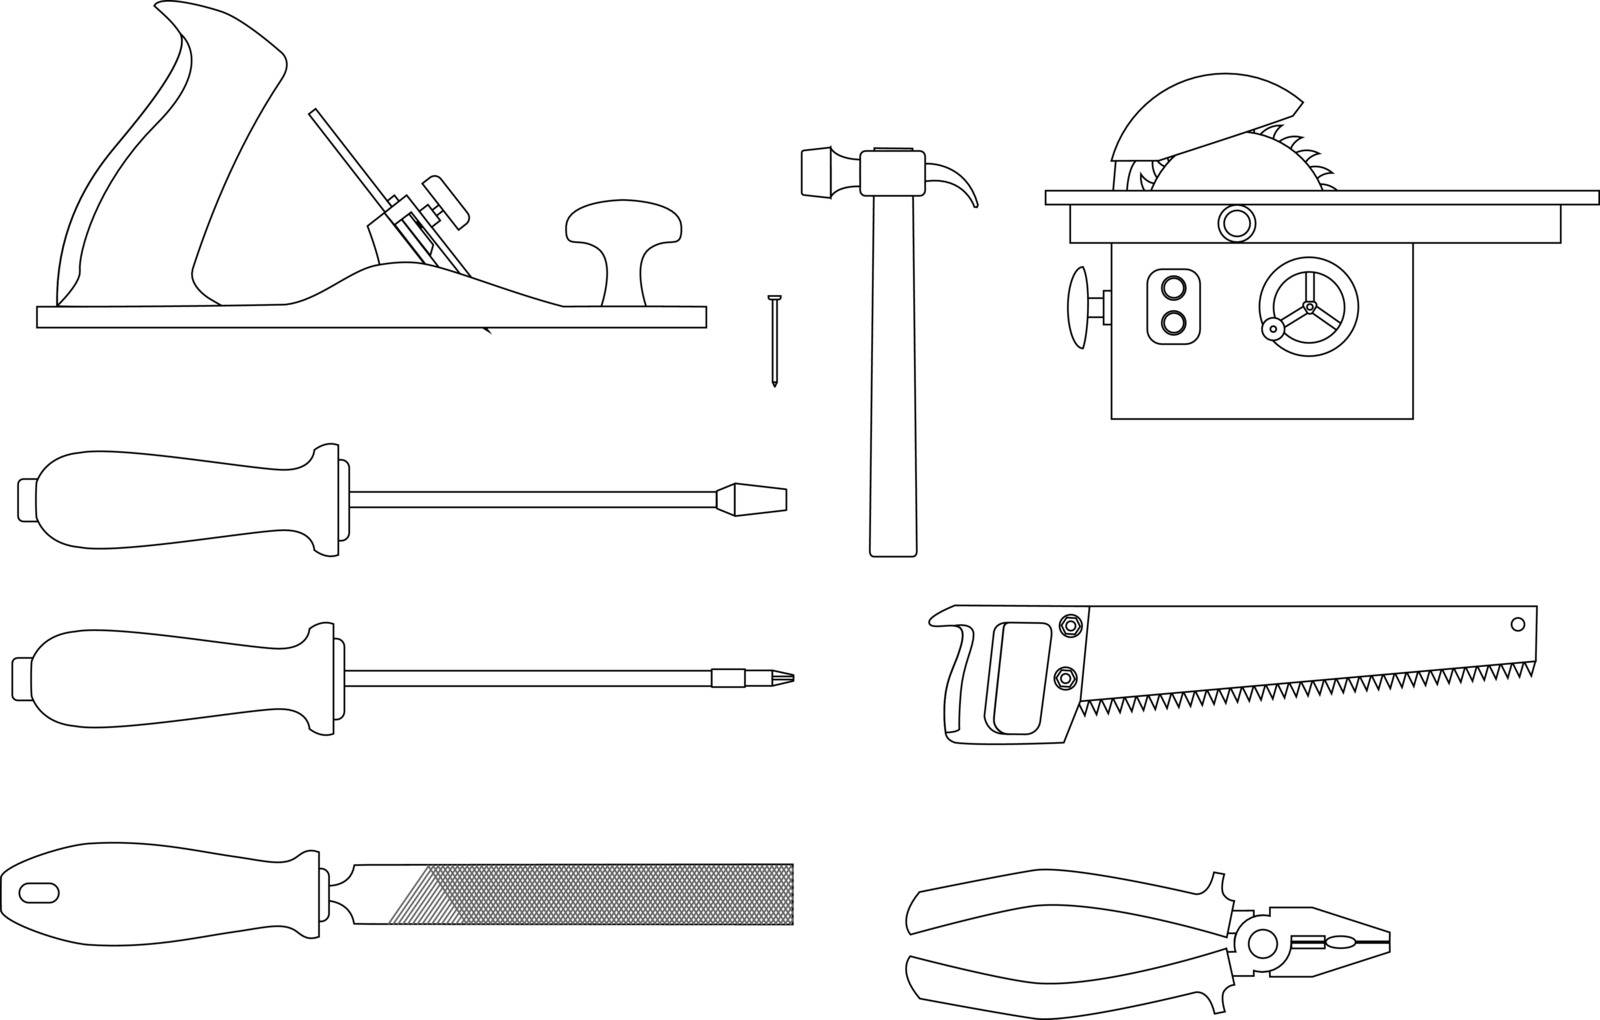 set of tools for working with wood: Planer, screwdrivers, hacksaw, pliers, circular saw, a hammer, a file. Sketches of of vector icons.